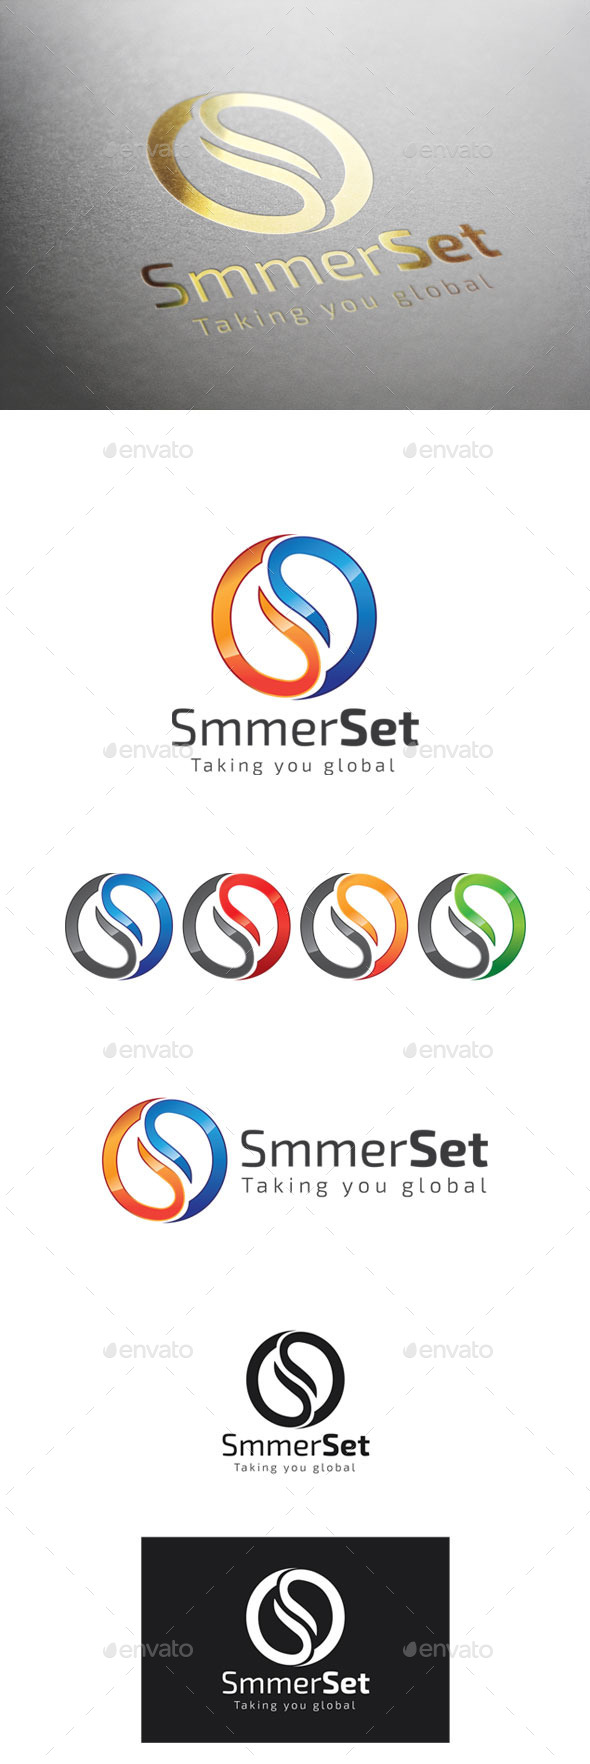 GraphicRiver SmmerSet Logo 9298992